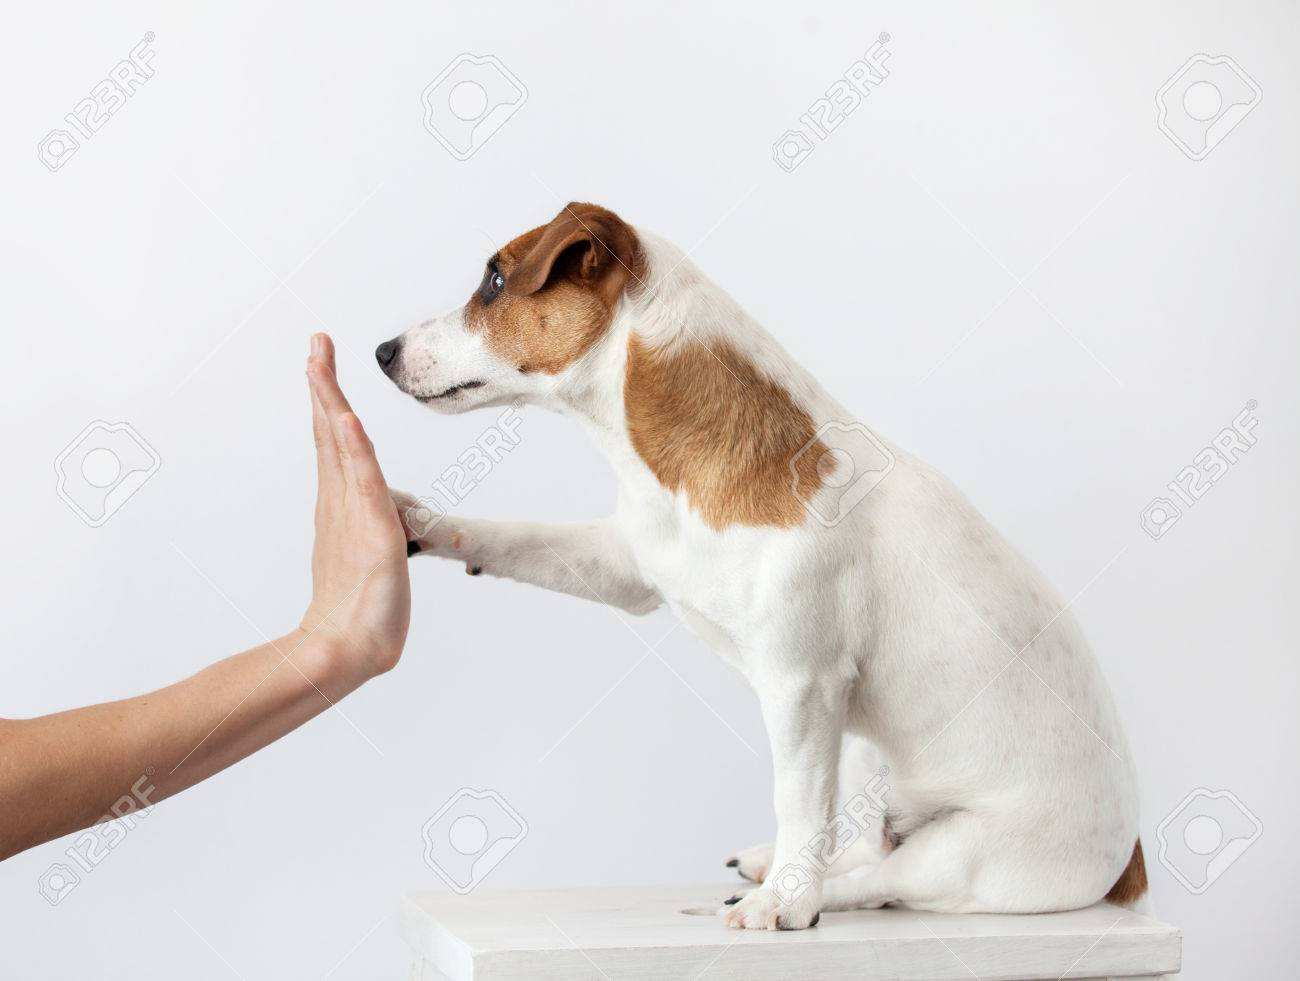 Dog greeting and human. Training puppy. Friendship - 58964398